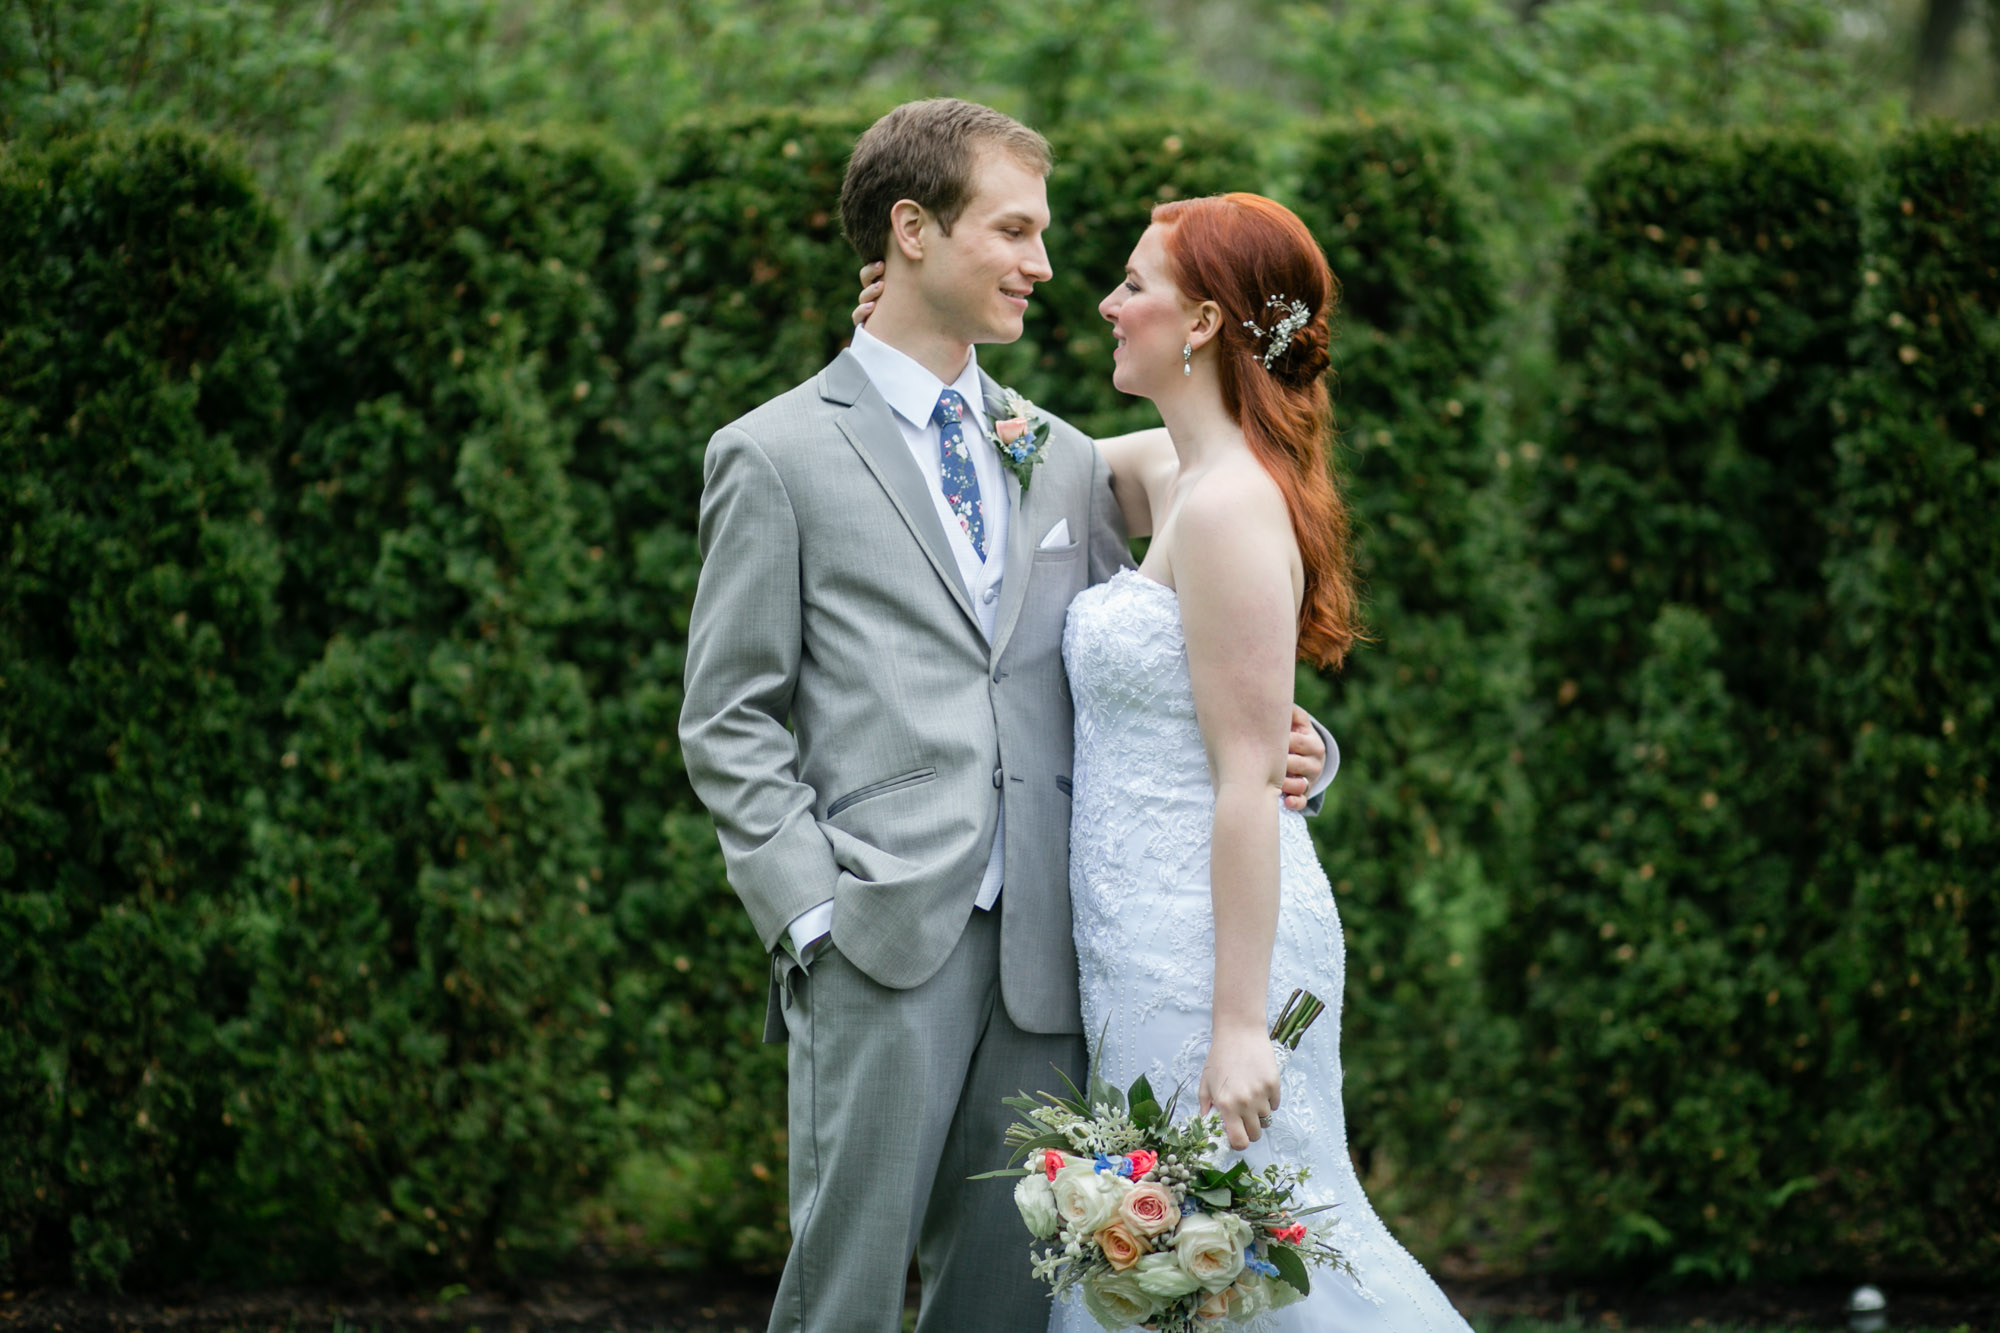 highland-meadows-sylvania-wedding-photos-50.jpg